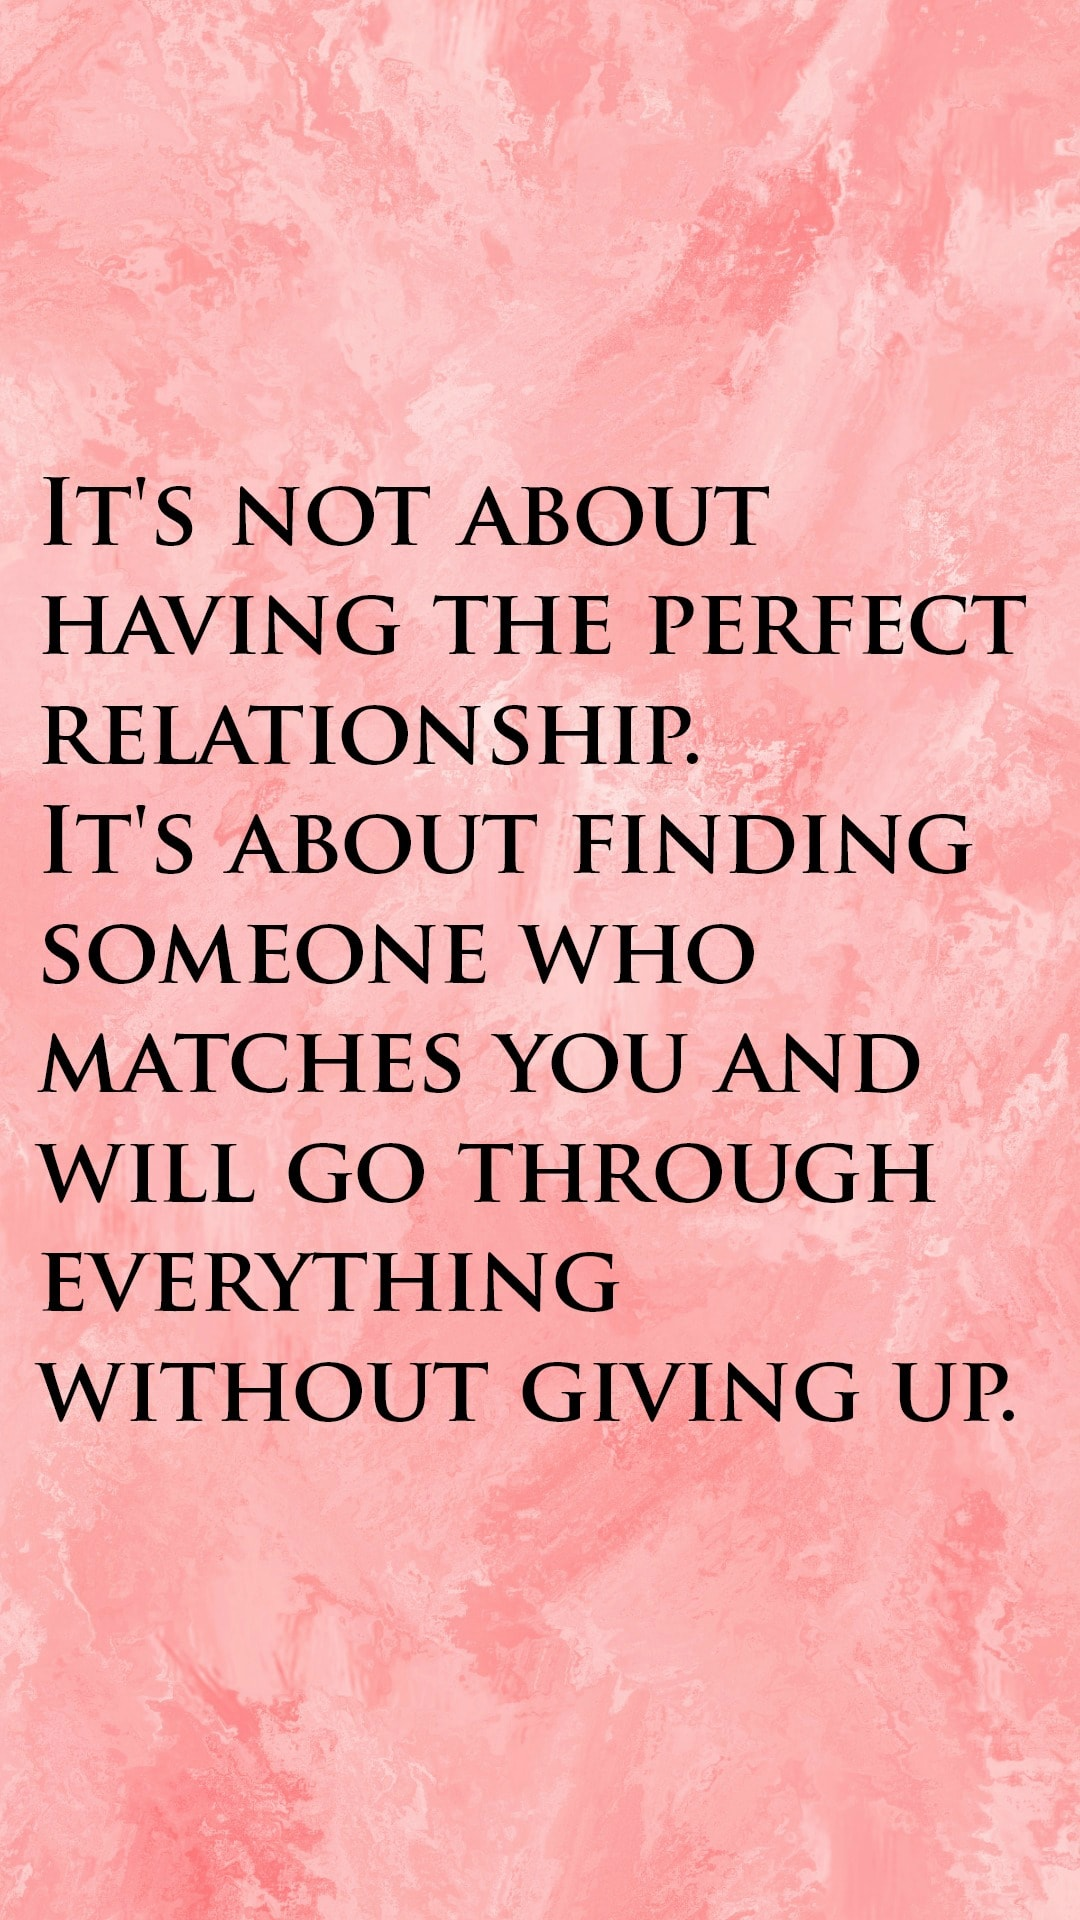 It's not about having the perfect relationship. It's about finding someone who matches you and will go through everything without giving up.